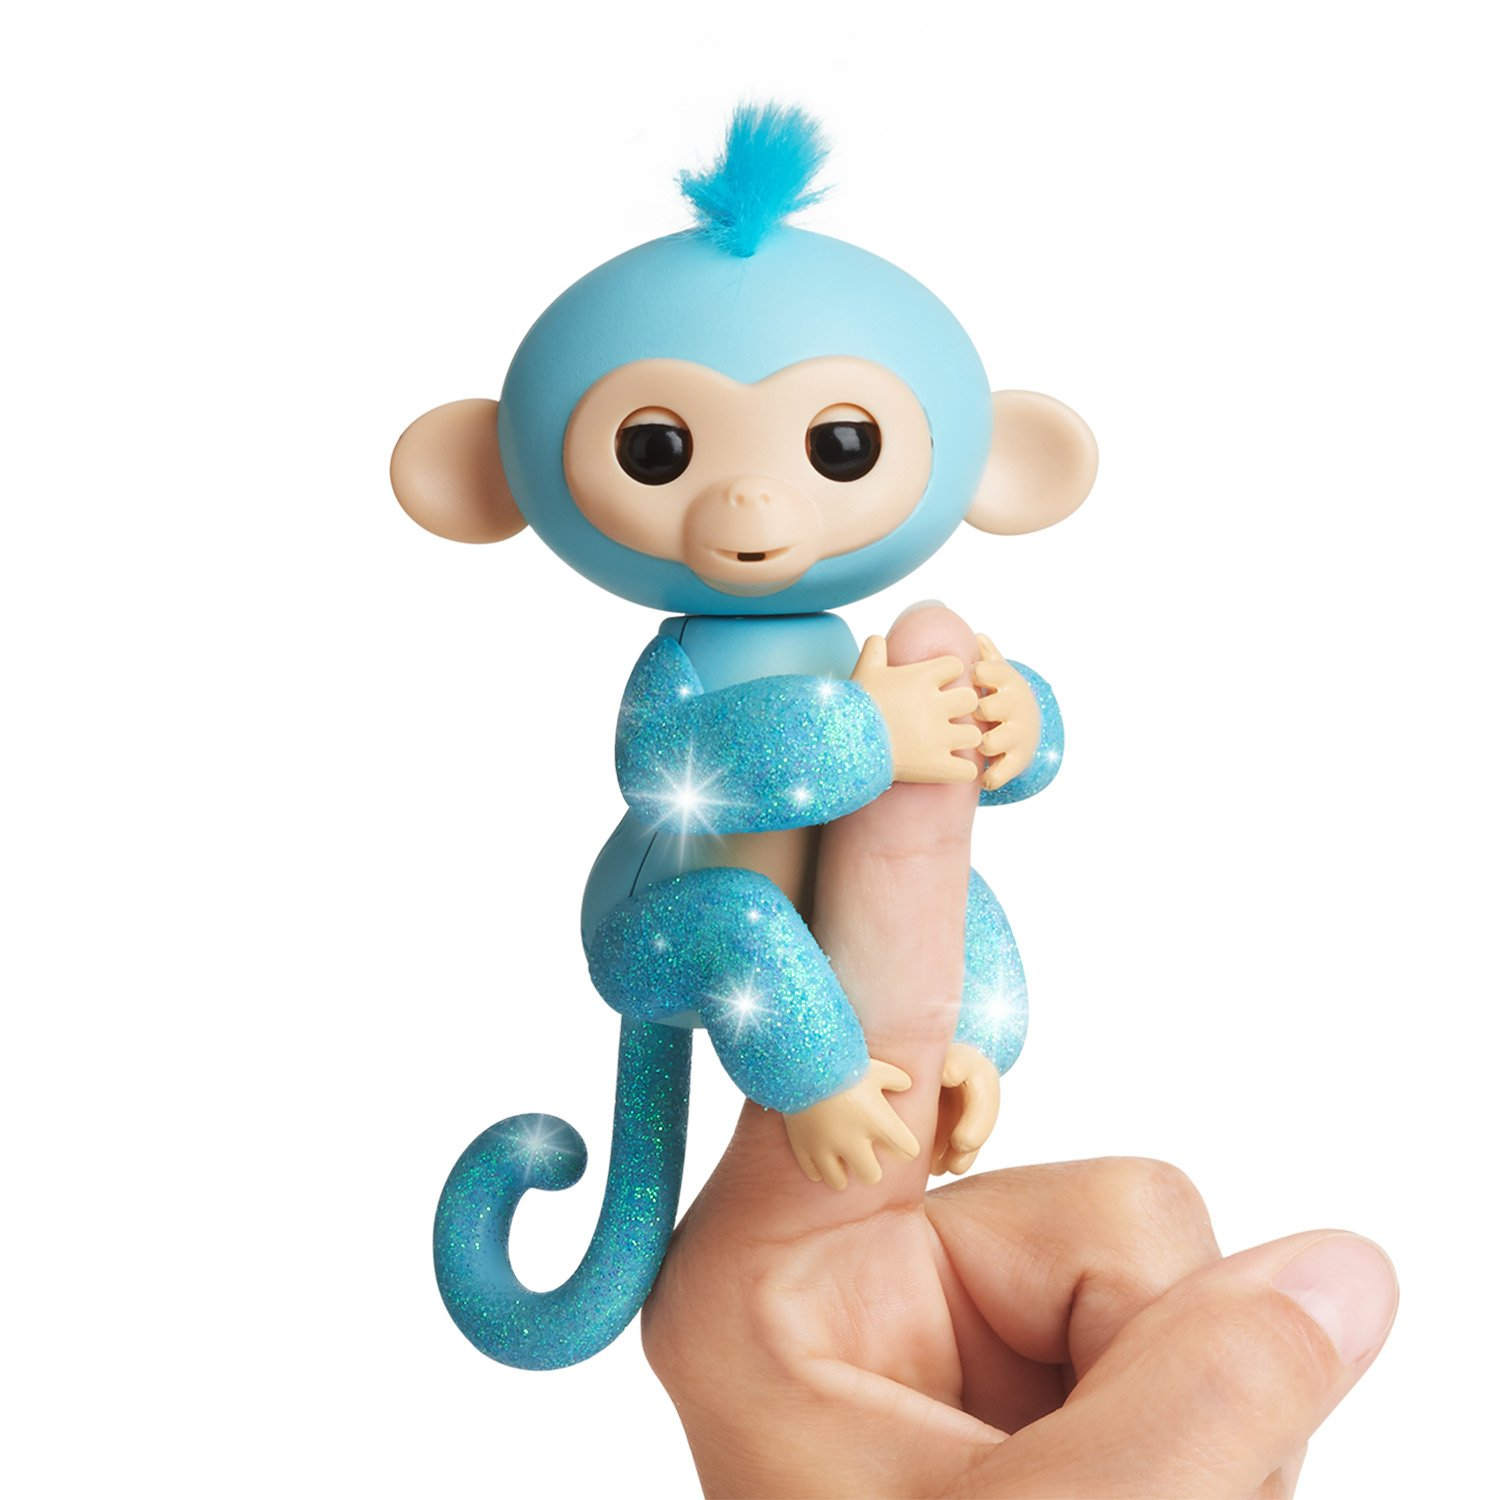 WowWee Fingerlings Glitter Monkey - Amelia (Turquoise Blue Glitter) - Interactive Baby Pet - By